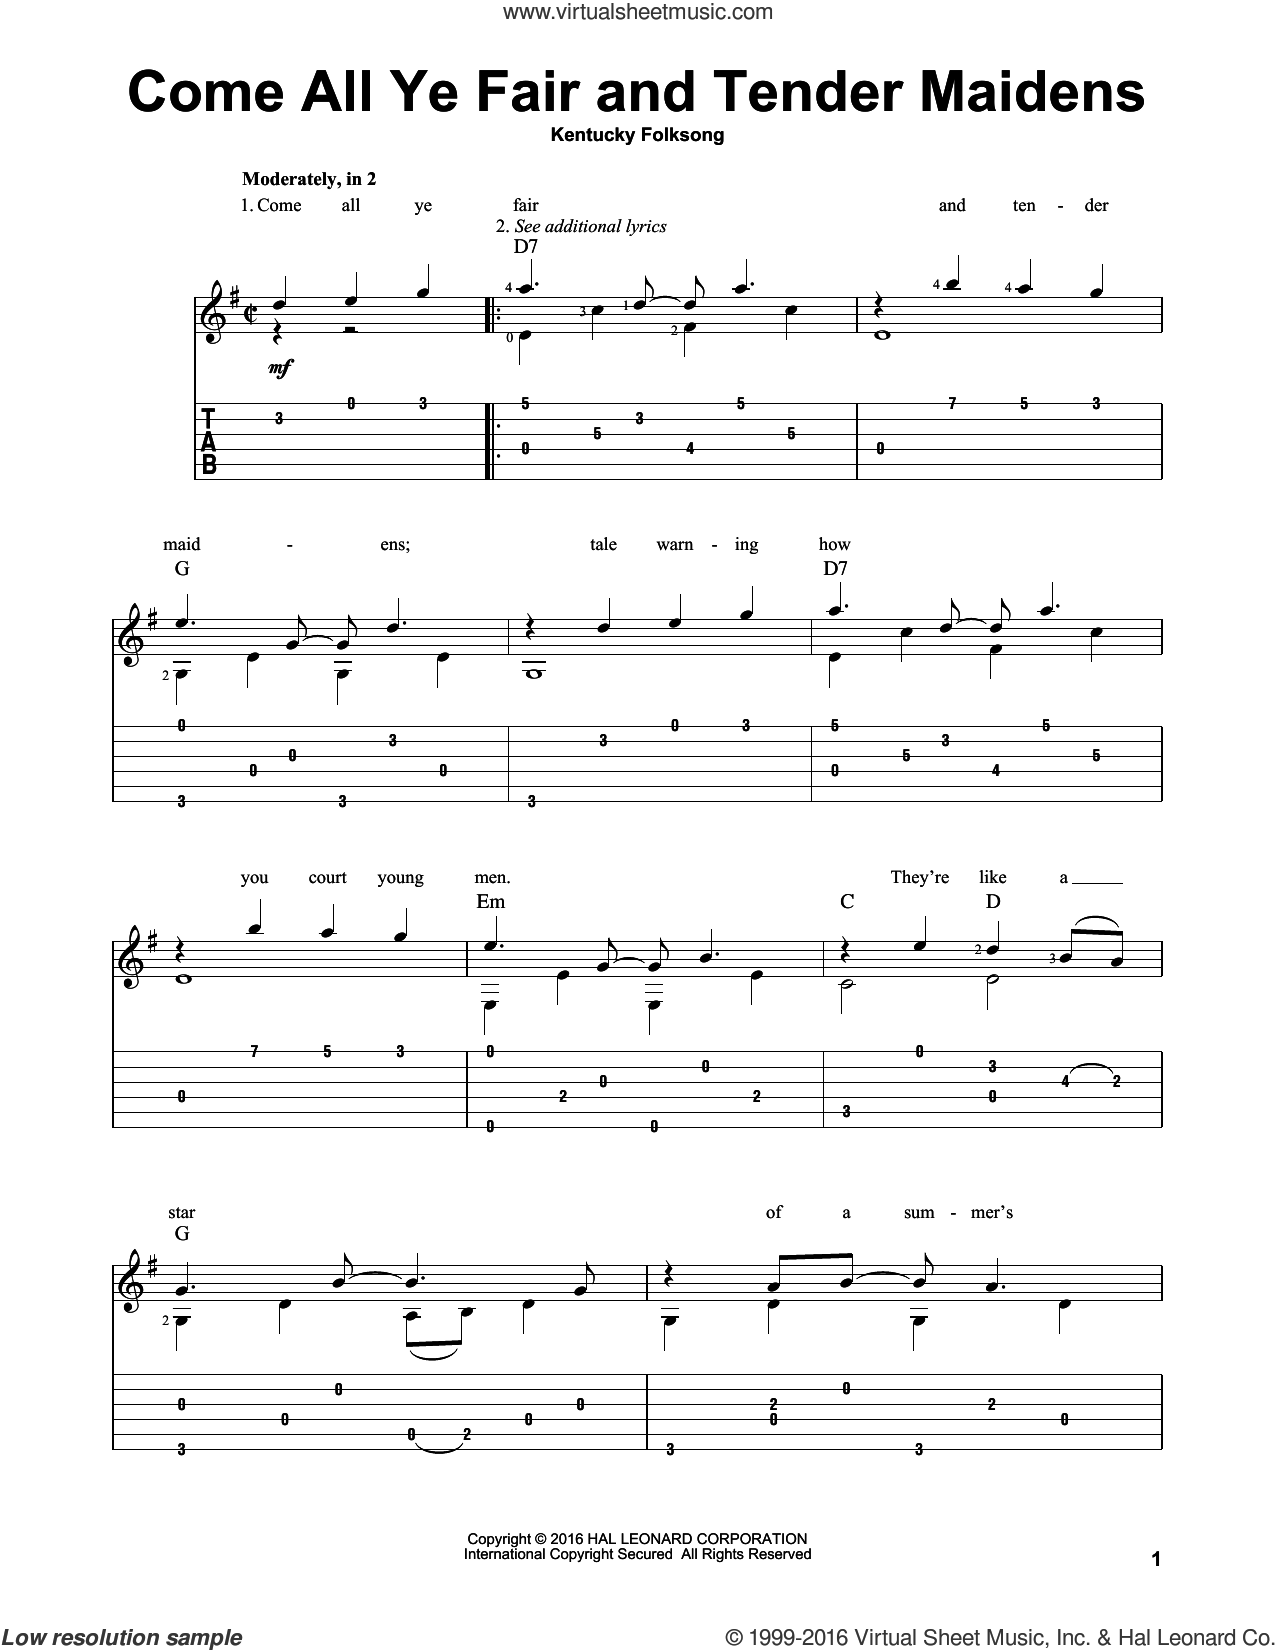 Come All Ye Fair And Tender Maidens sheet music for guitar solo by Kentucky Folksong